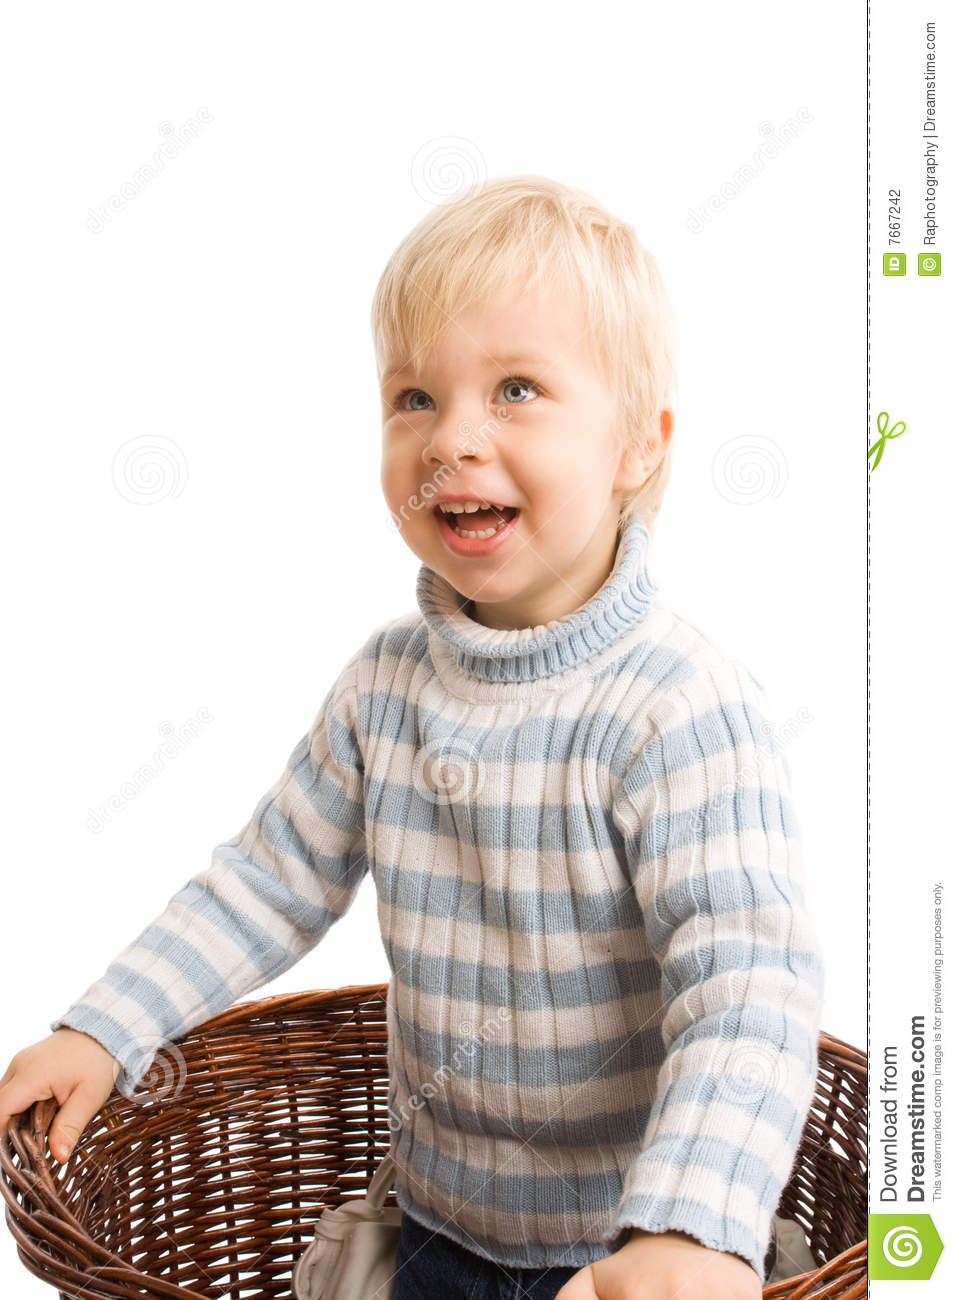 Baby Boy Wearing Glasses With A Clever Look. Stock Photo